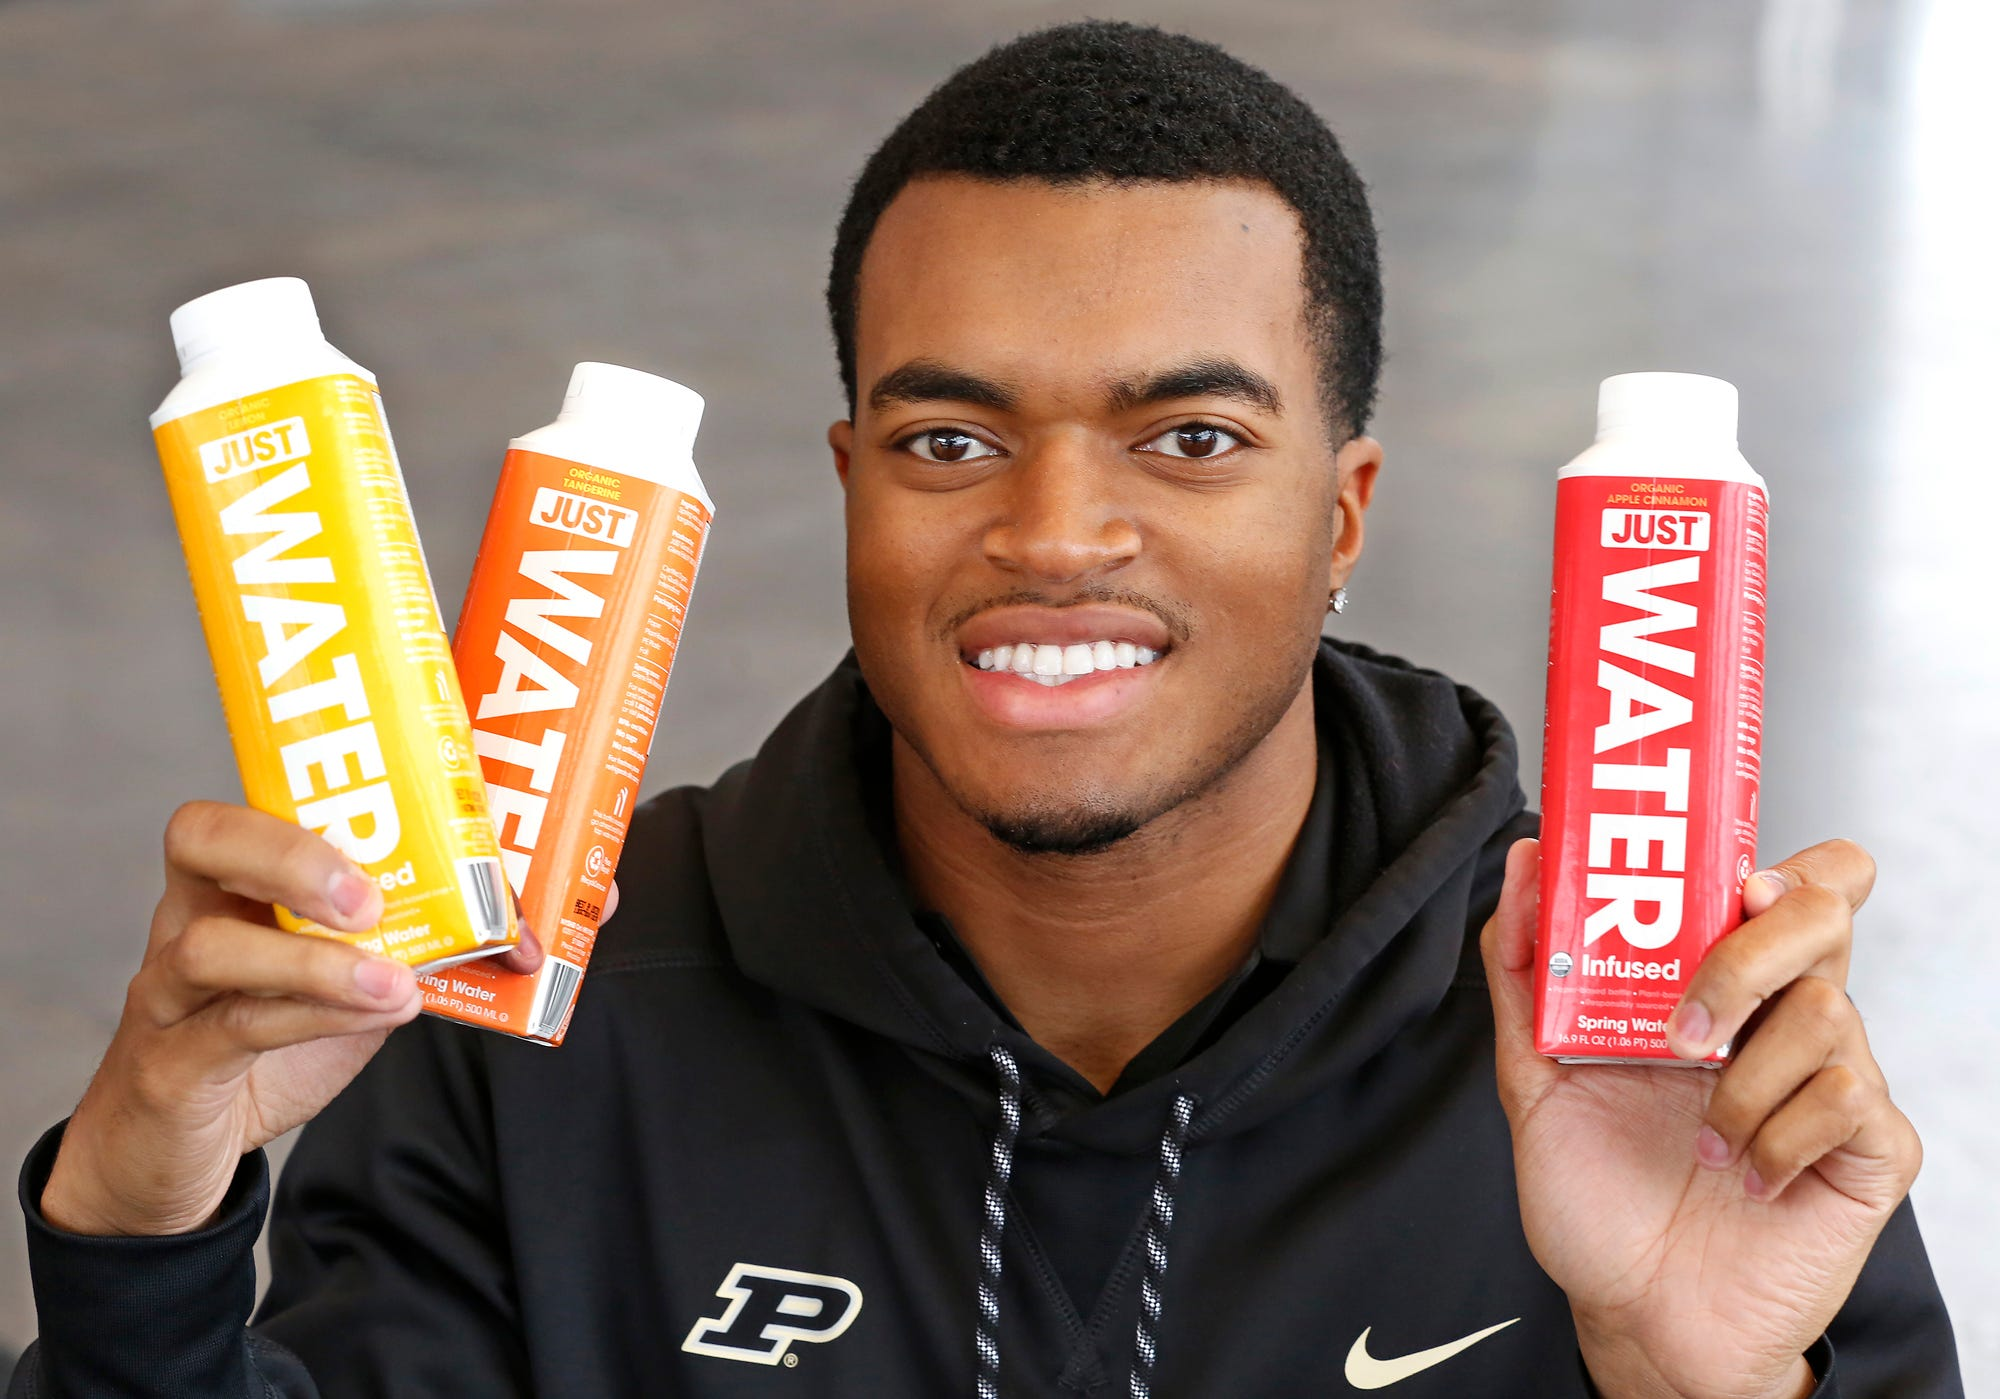 Aaron Banks with bottles of Just Water Thursday, December 6, 2018, on the campus of Purdue University. Banks, who is Purdue student body president and also a quarterback on the football team, negotiated the deal to bring Just Water, featuring environmentally friendly packaging, to the Purdue campus.